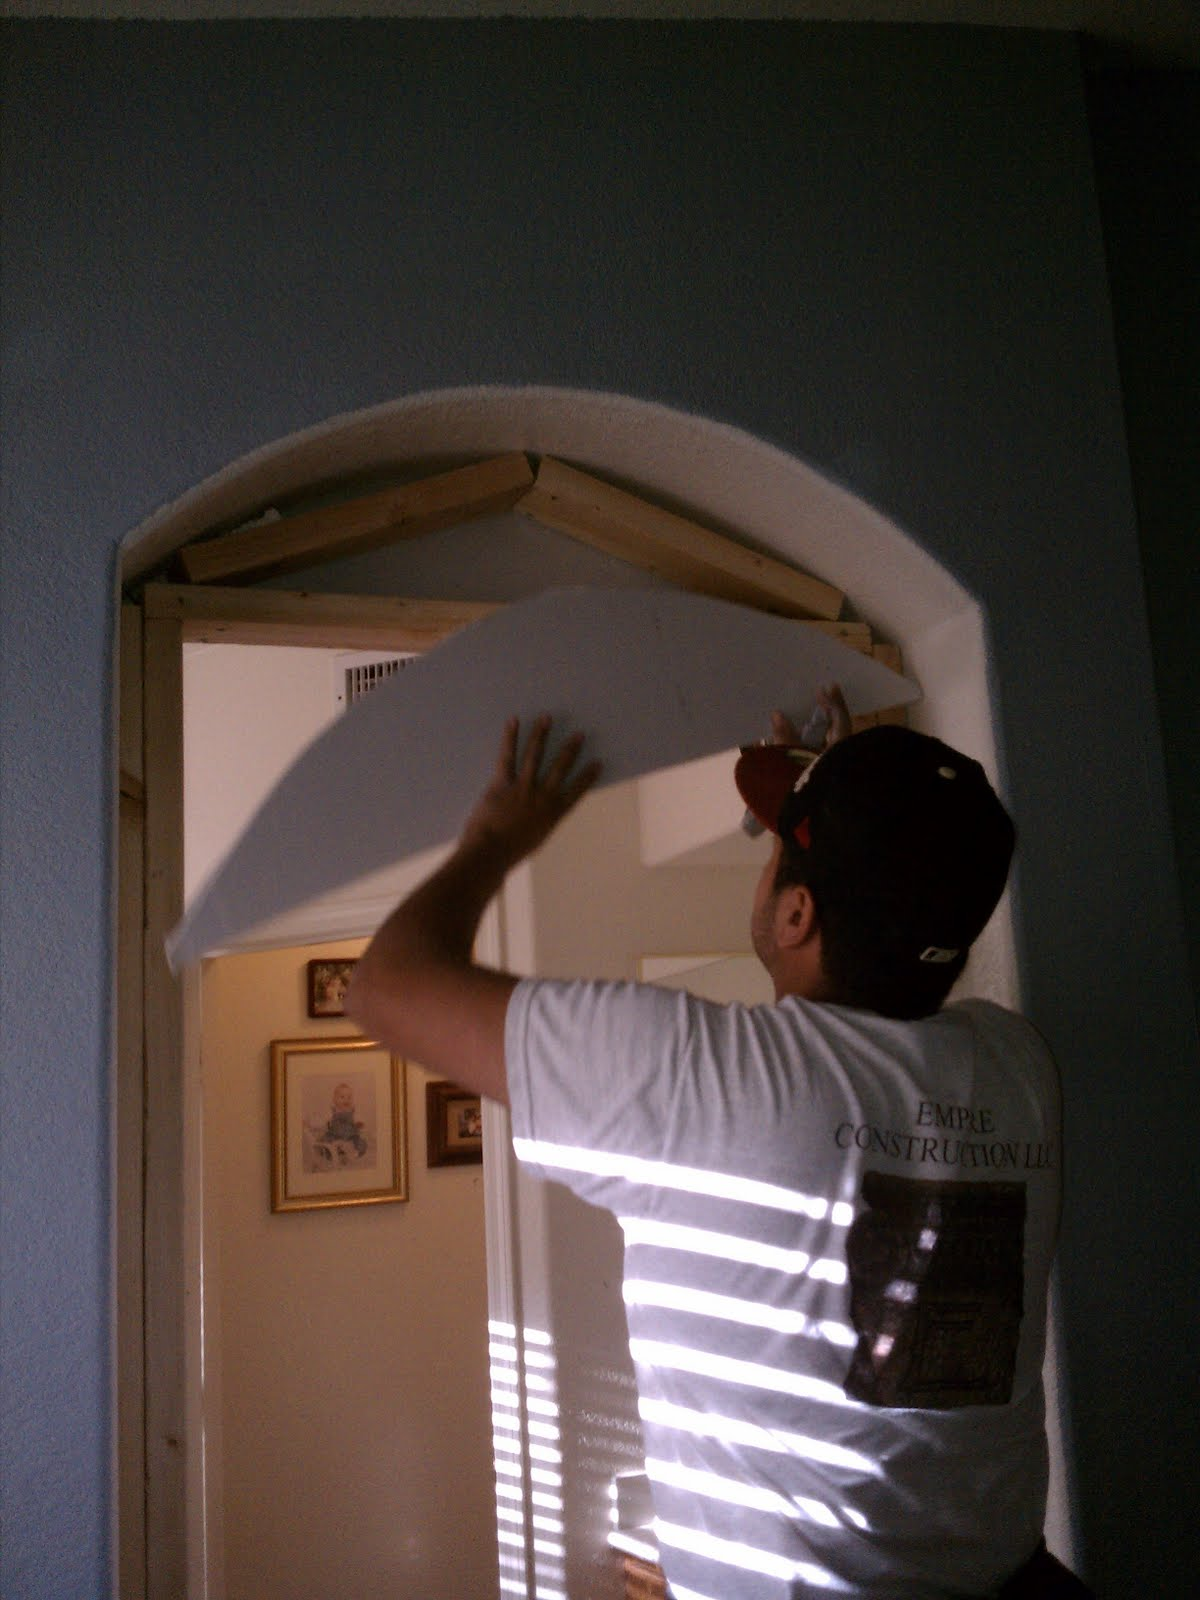 Cutting The Top Arch Semi Circle Crescent Out Of Drywall. Tool: Razor Knife.